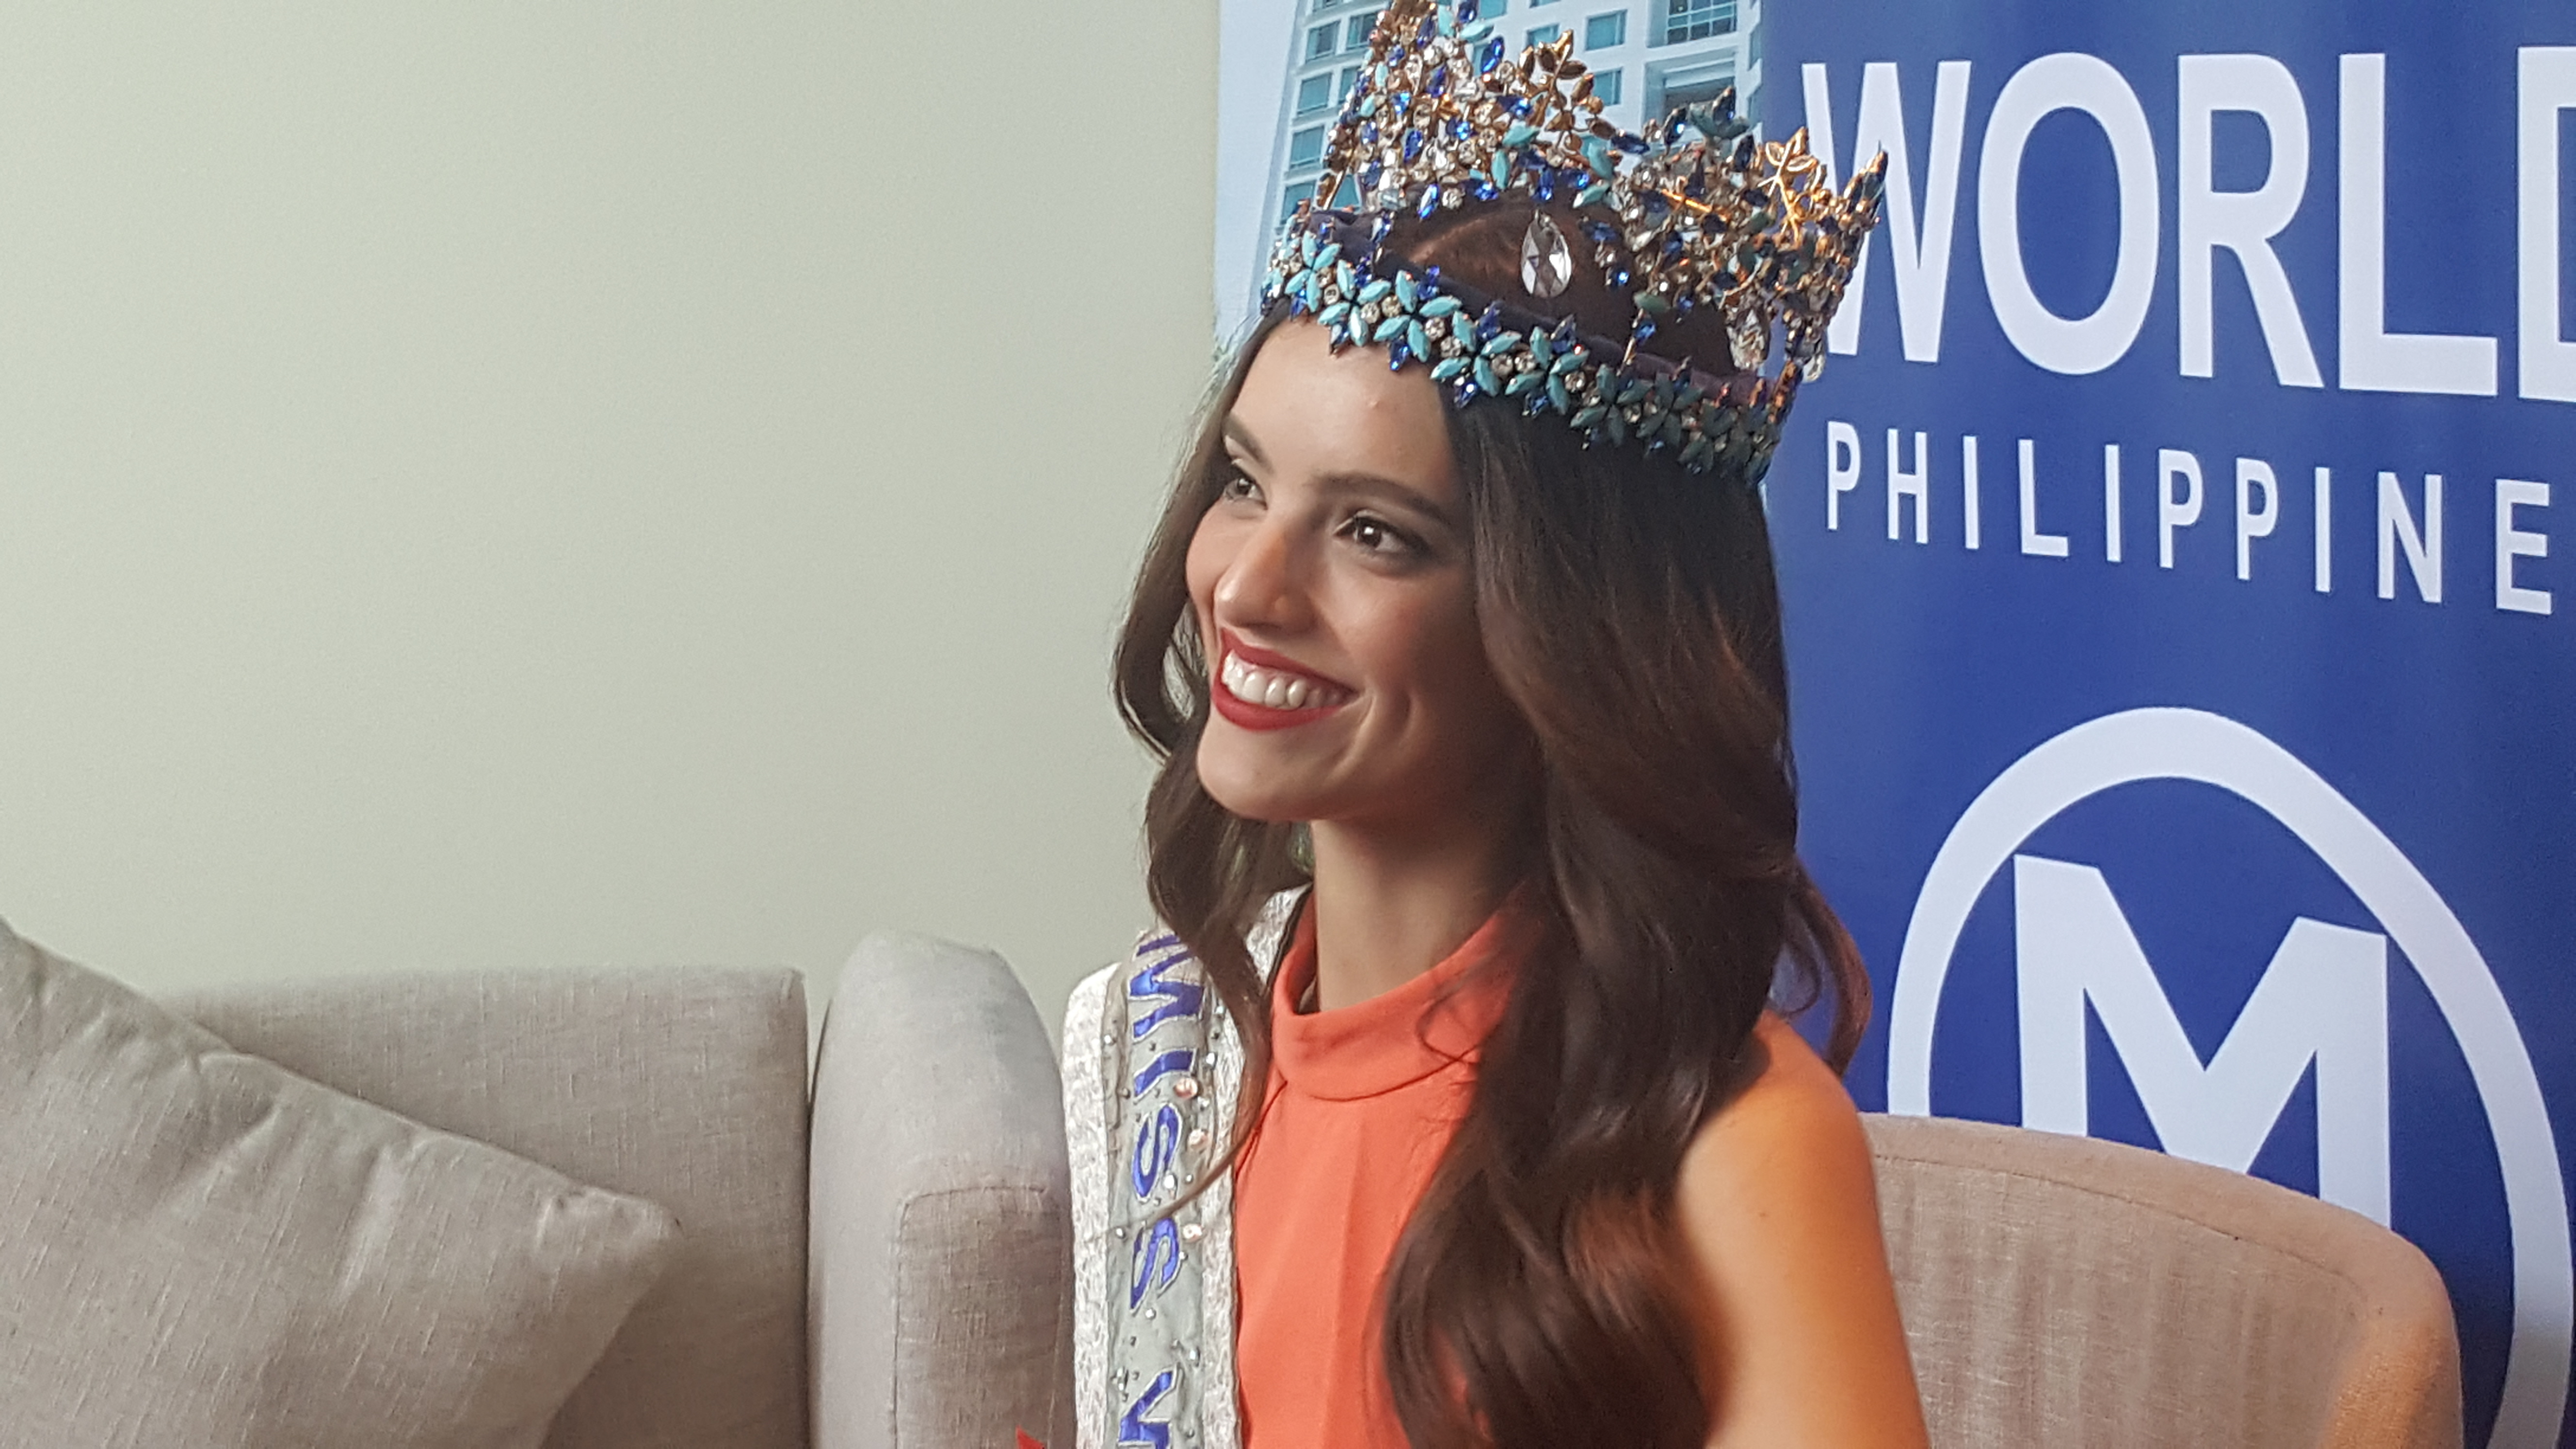 FIRST TIME IN MANILA. Vanessa Ponce de Leon says she wants to visit many places as she can in the Philippines including the beach.